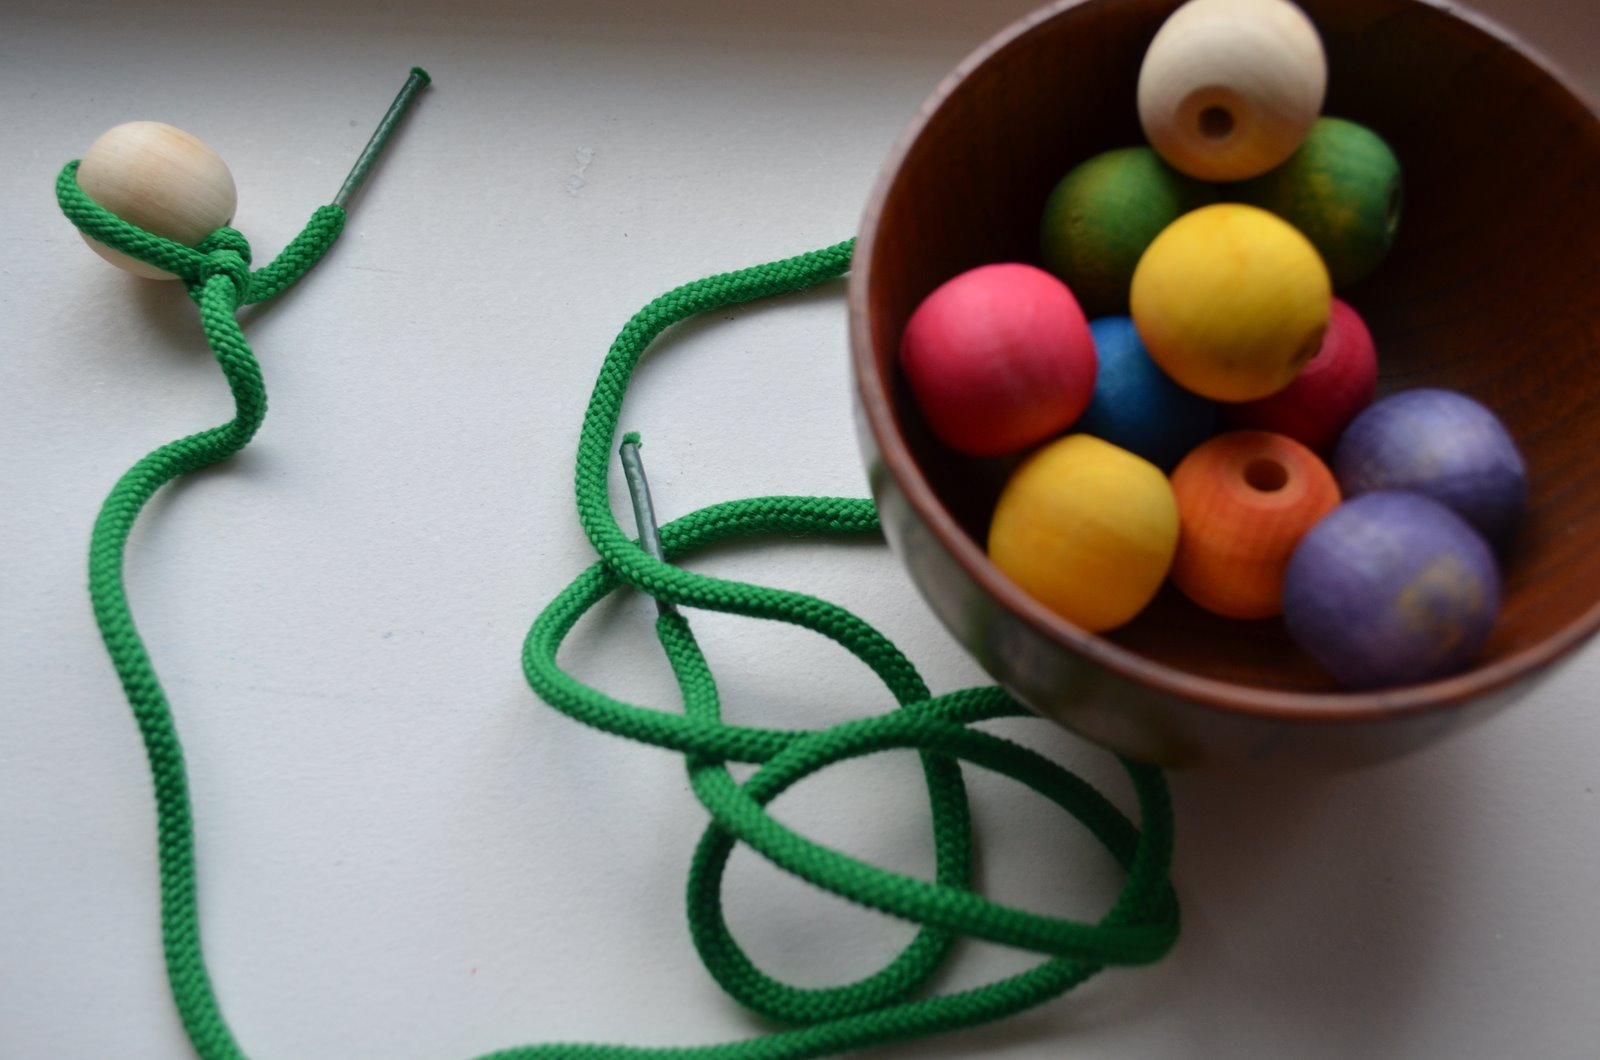 Rainbow Bead Stringing (Photo from The Education of Ours)